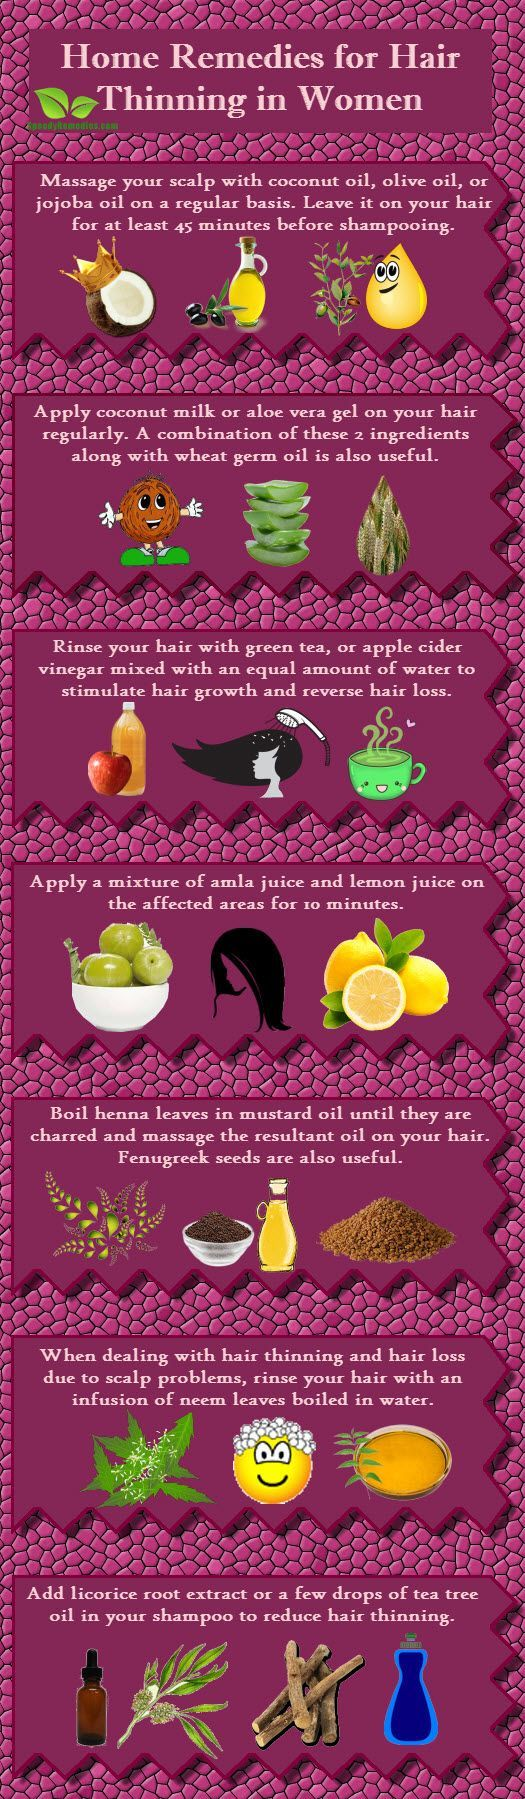 Home remedies for Thinning Hair #hairlosshomeremedies